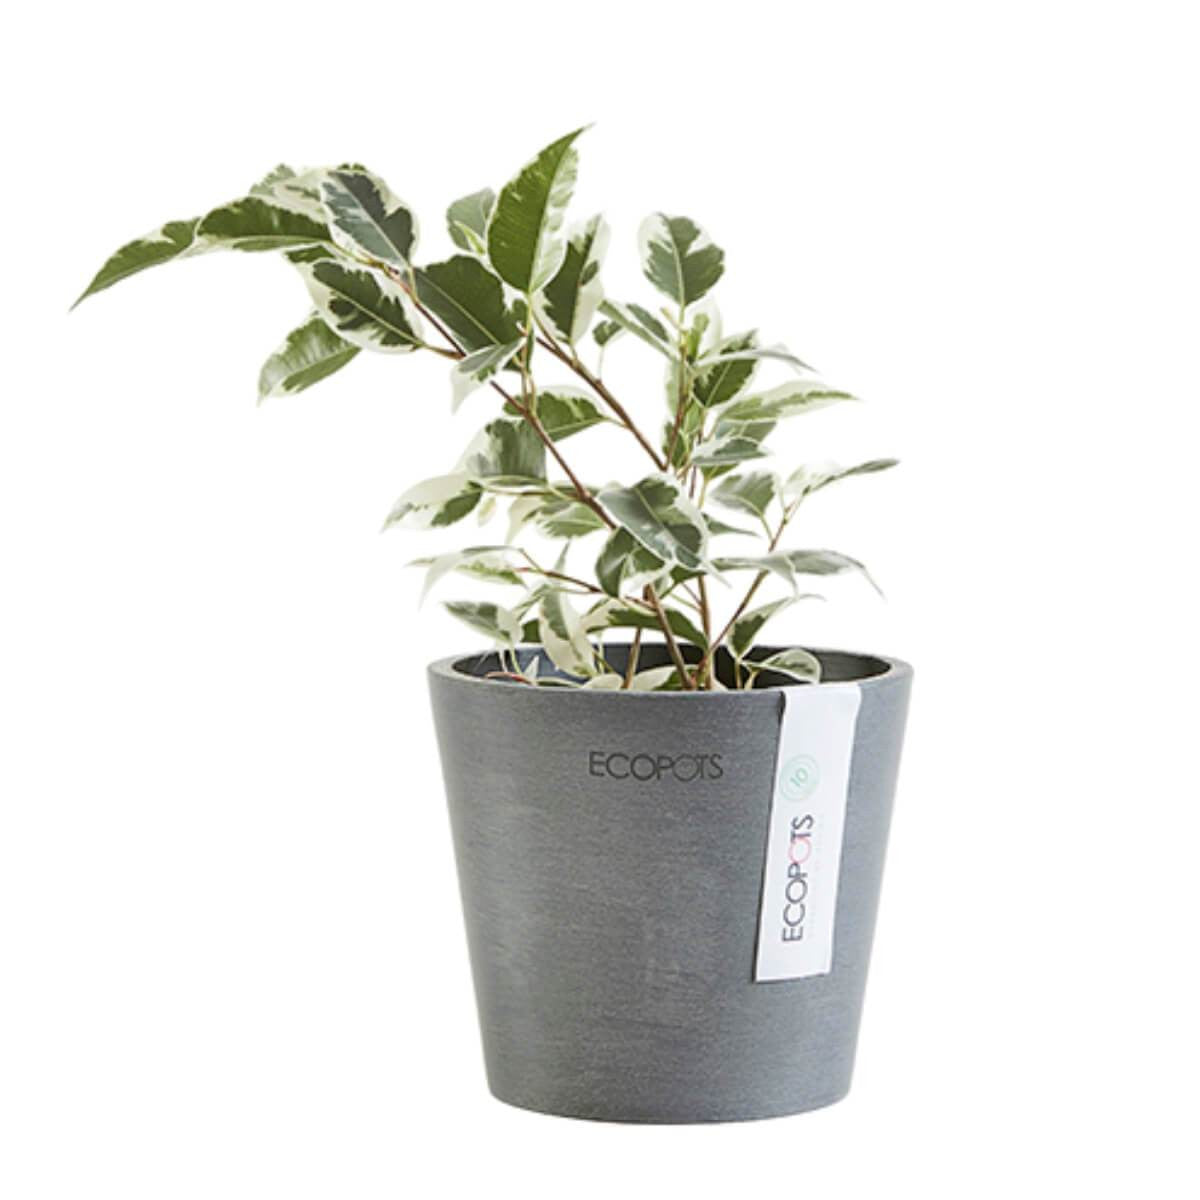 Ecopots Amsterdam pot 10.5 cm grey with plant